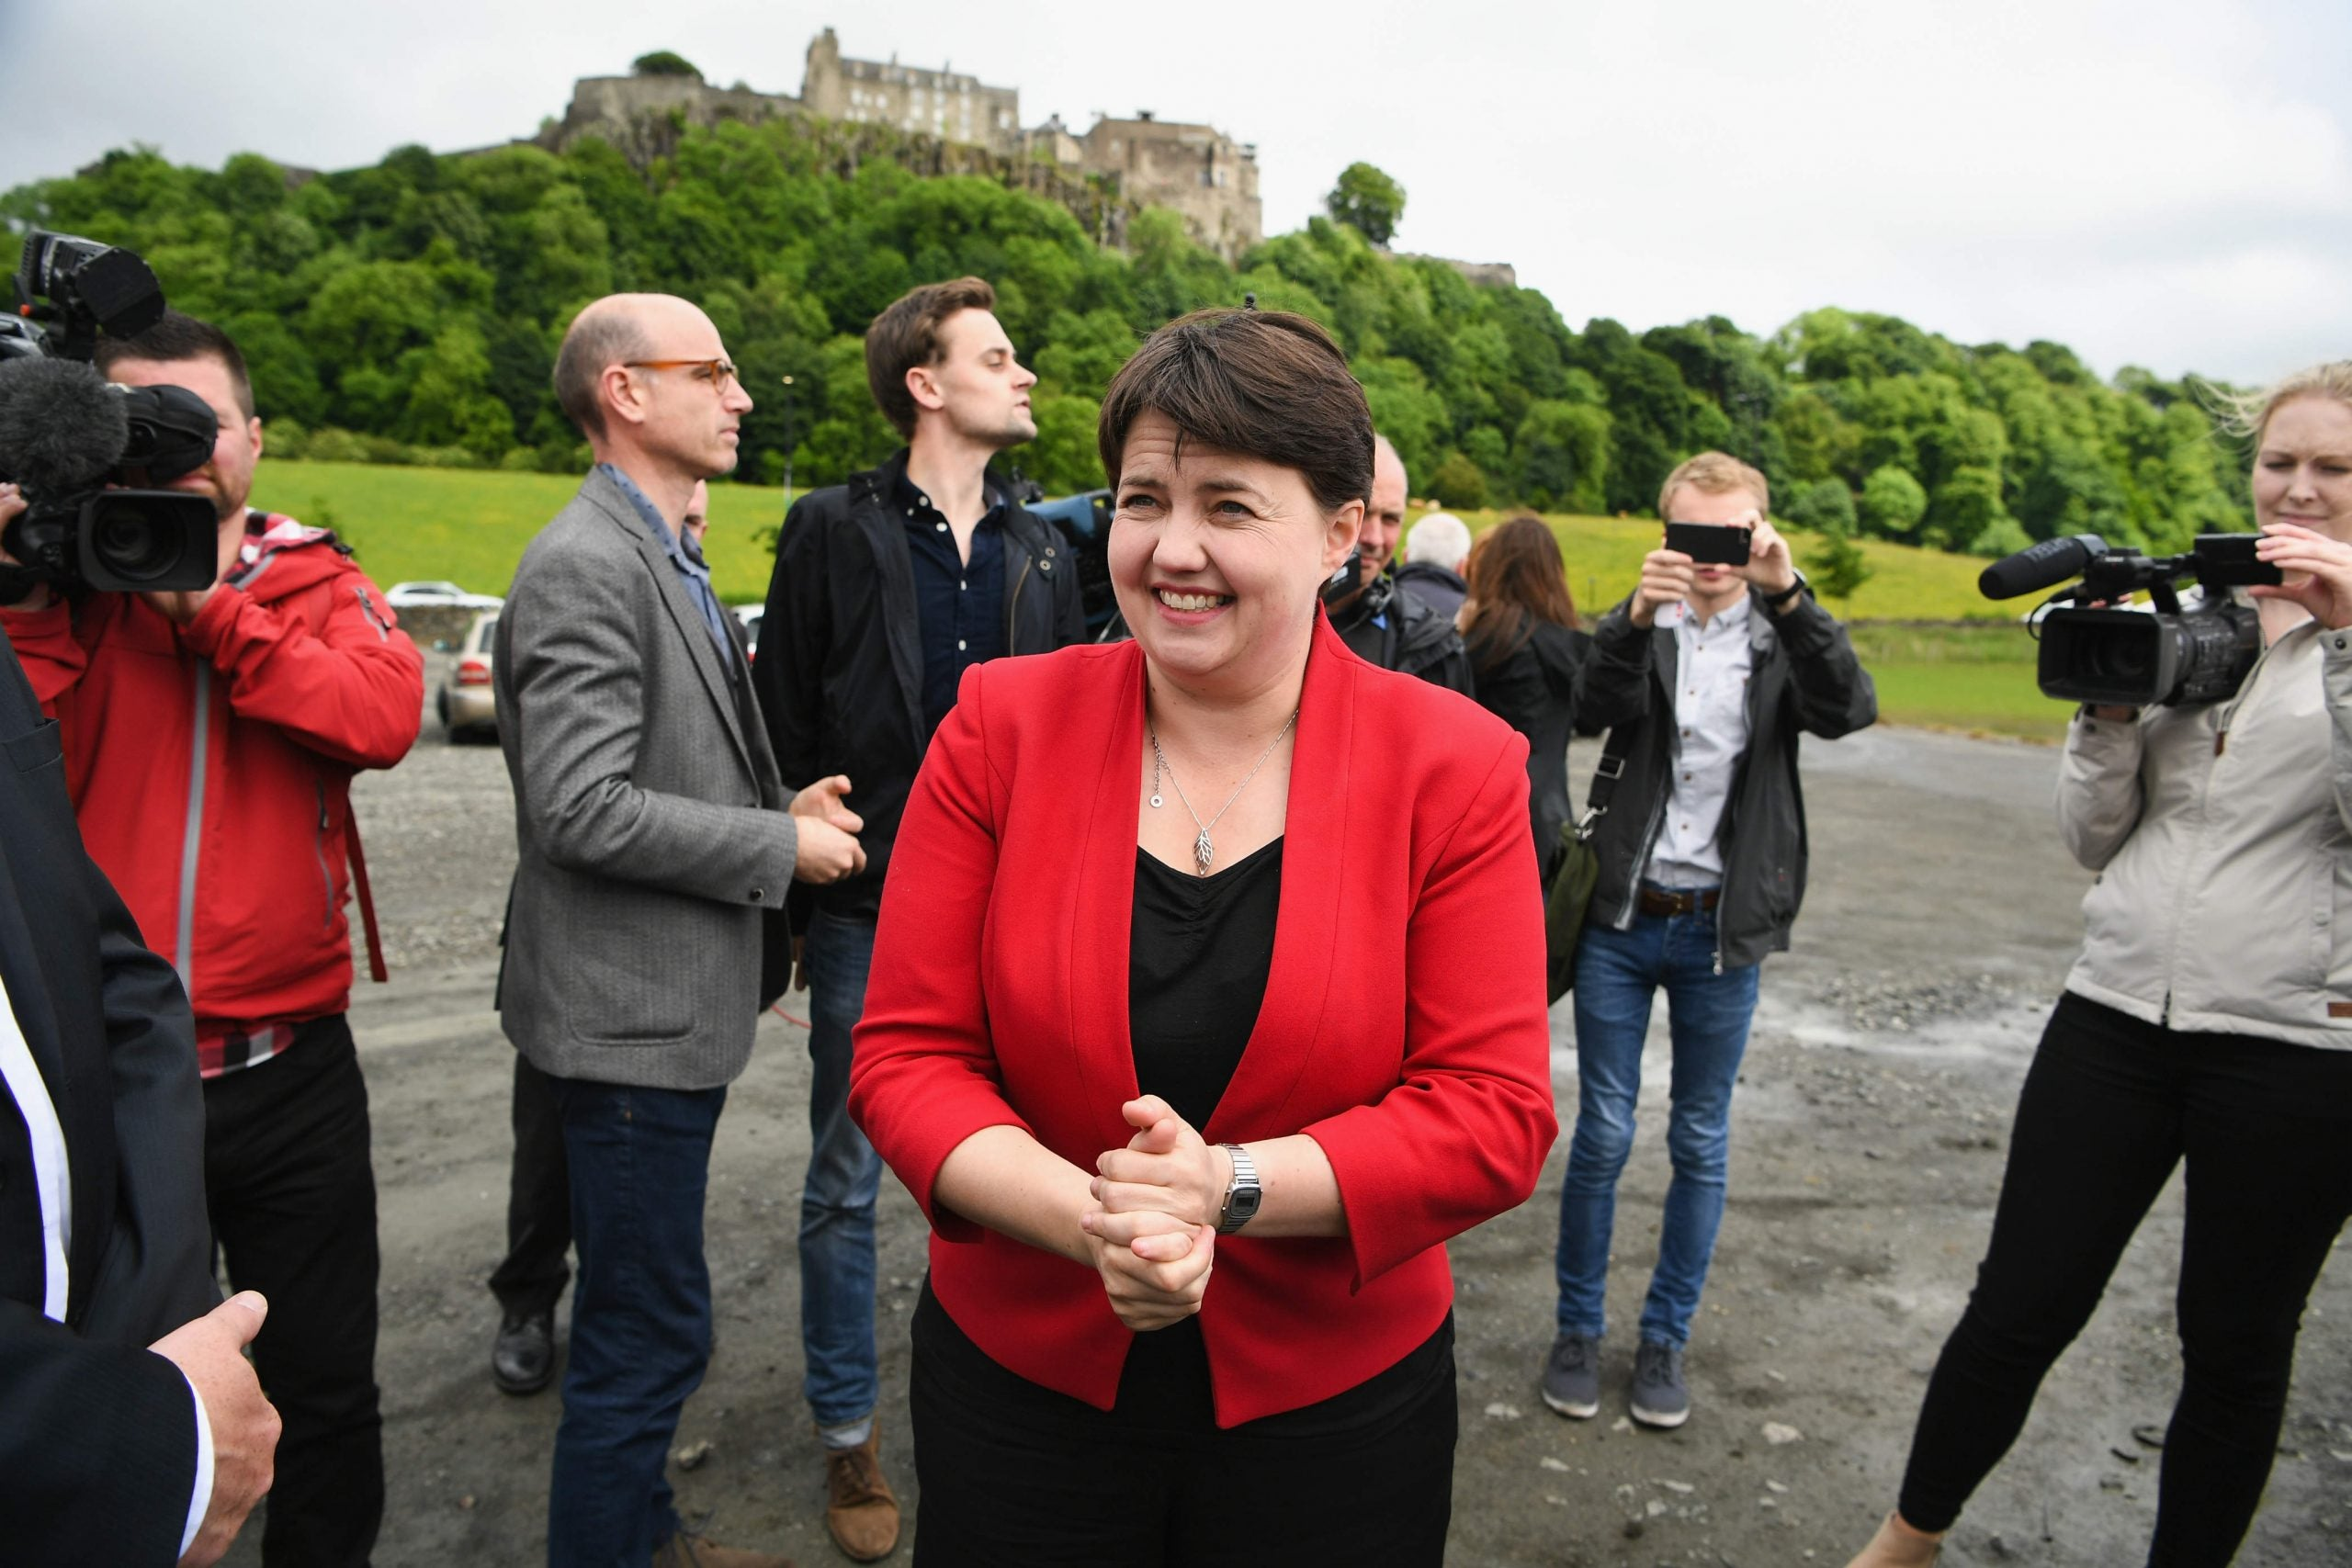 Ruth Davidson was the one winner in a room of losers. Why shouldn't she be Conservative leader?